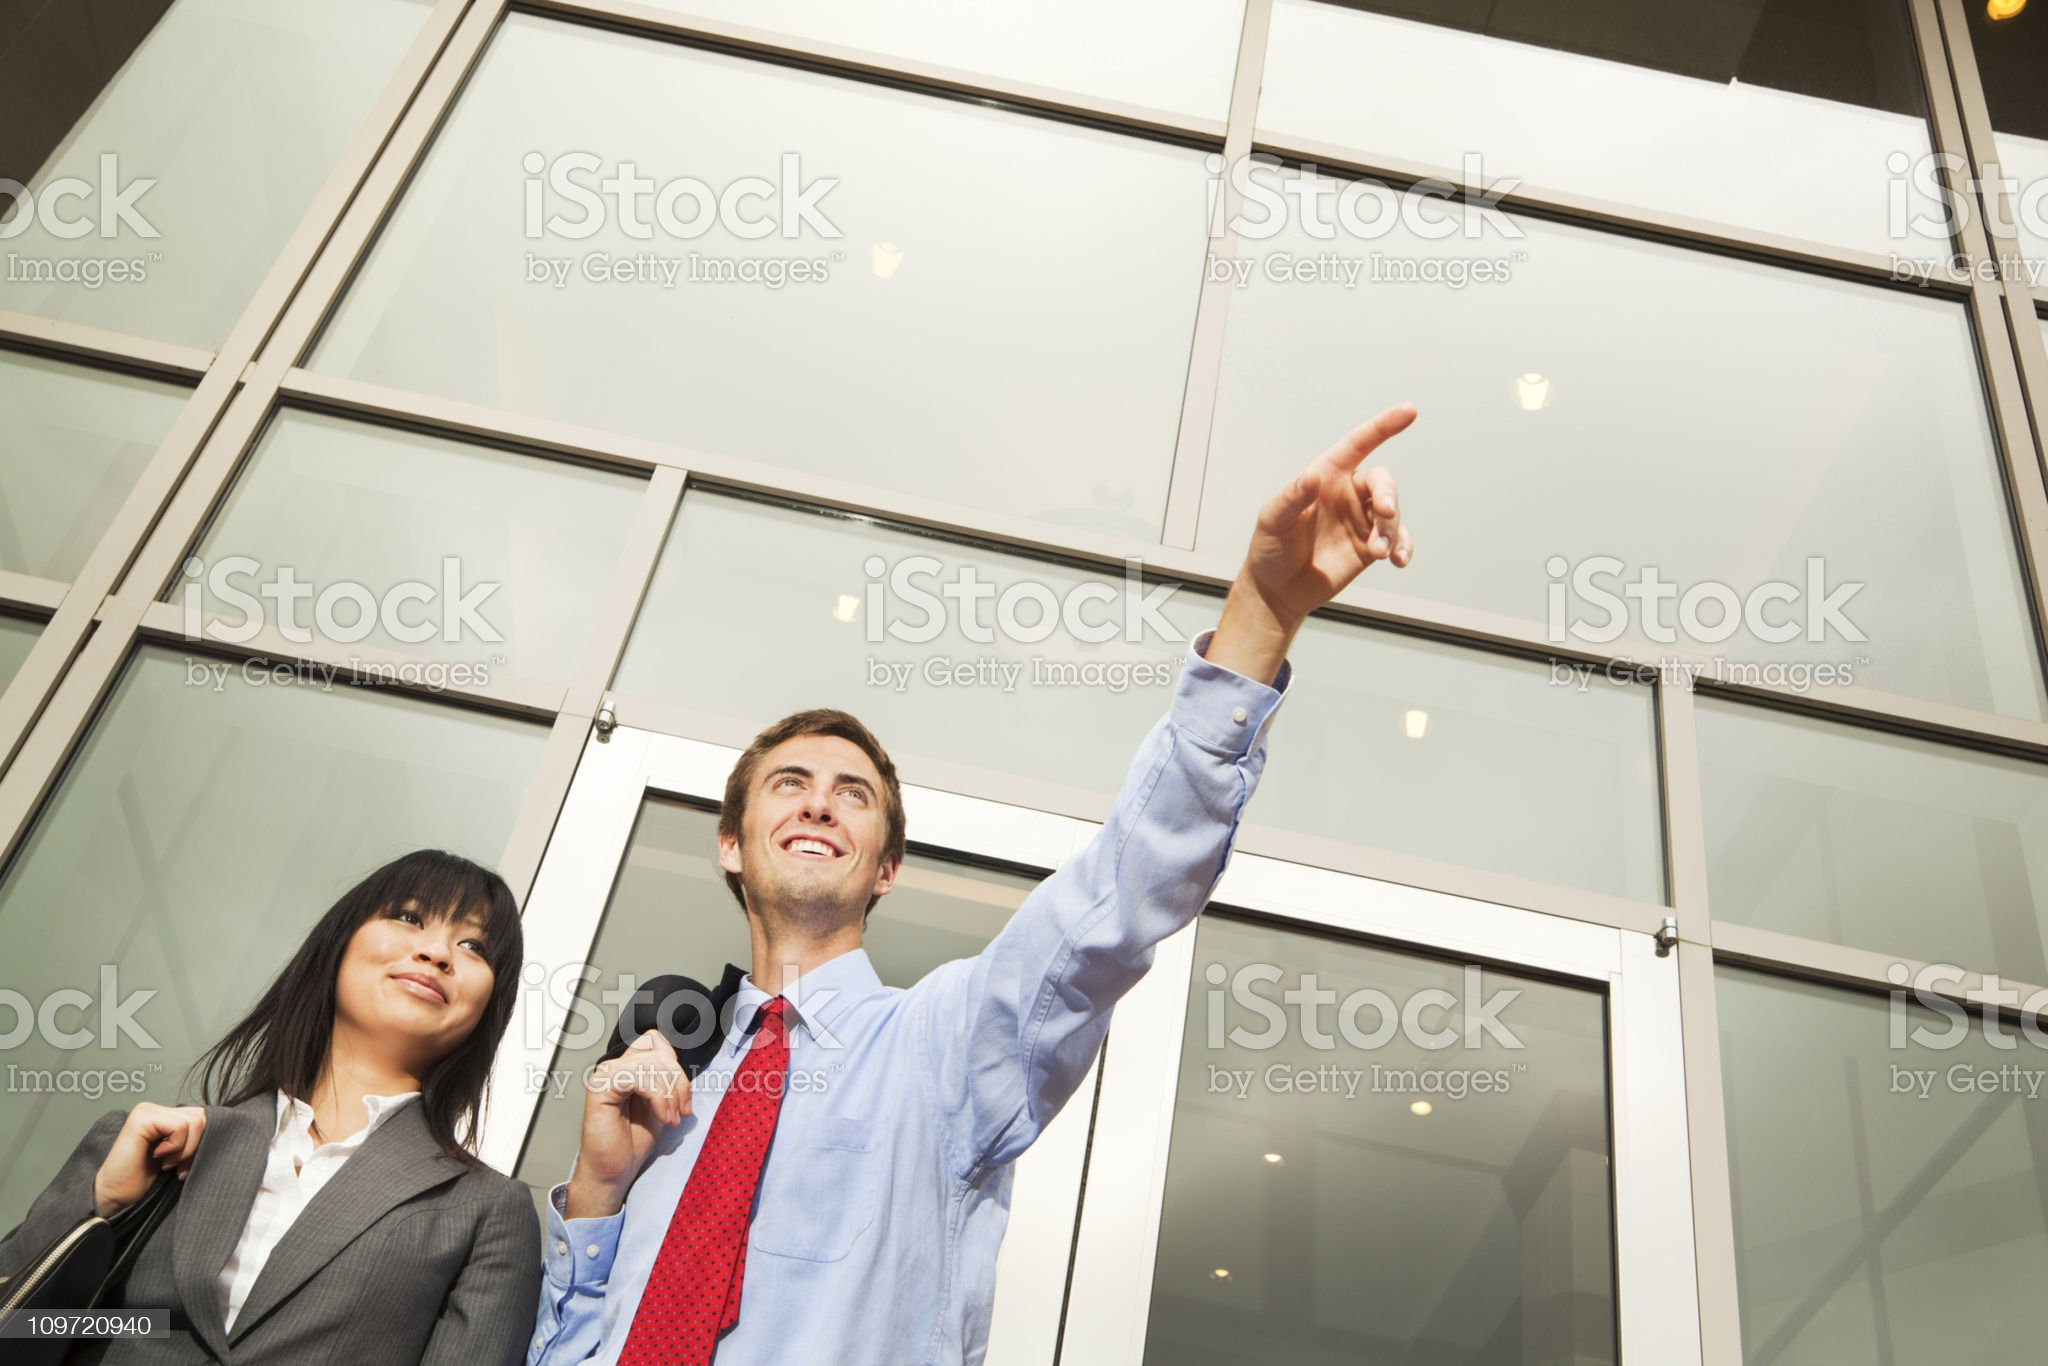 Corporate Business Office Workers Looking Forward to the Future royalty-free stock photo